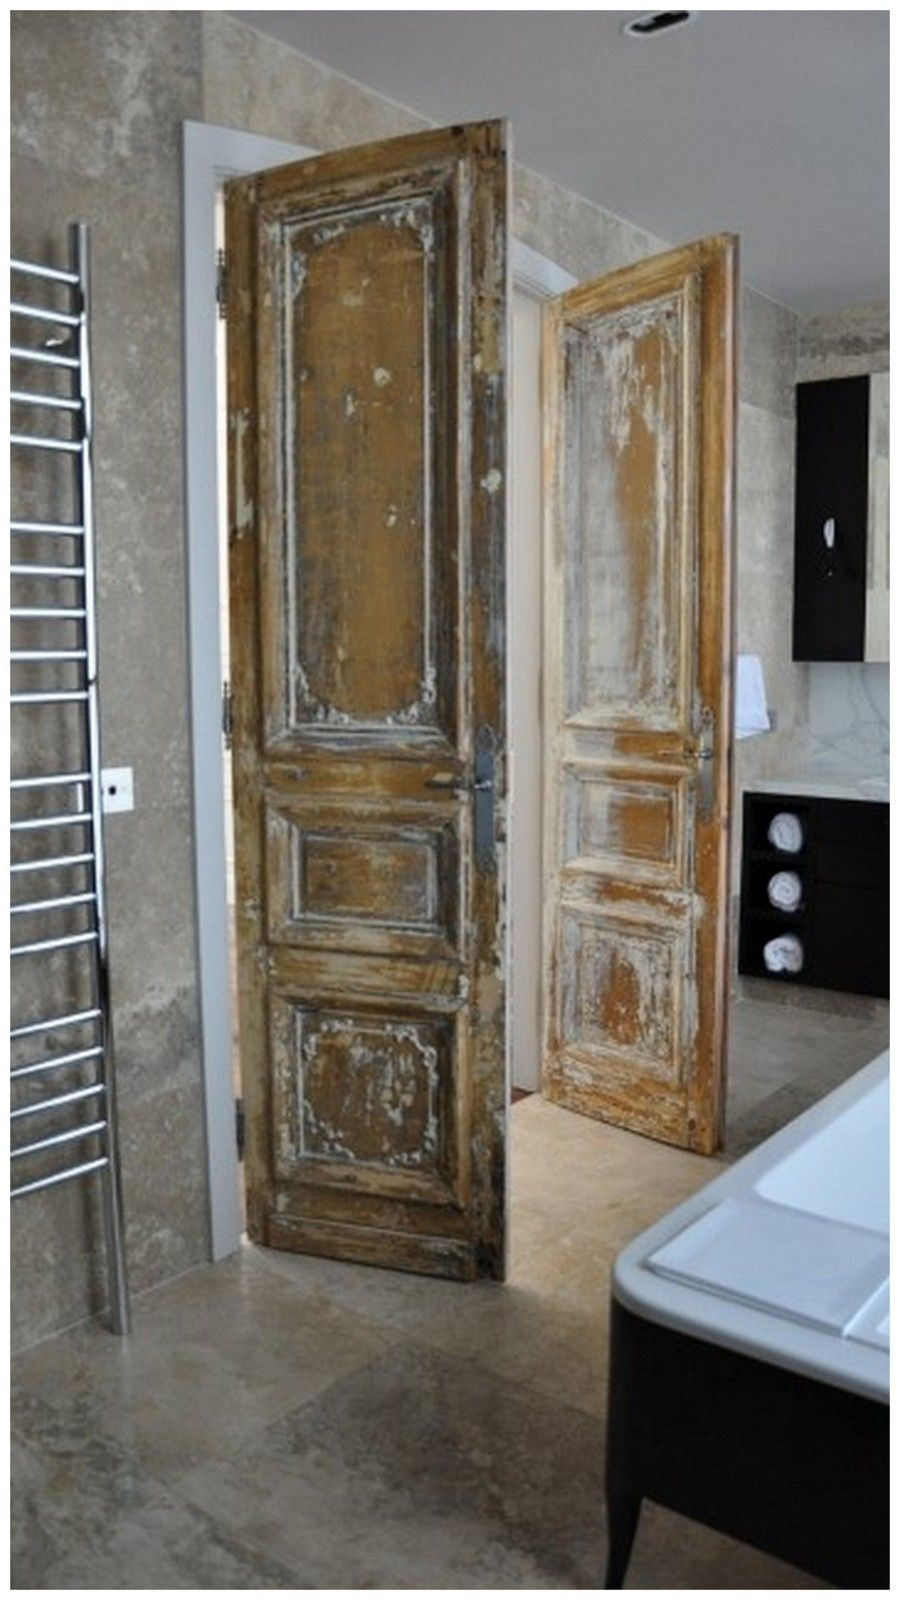 Vintage Doors Into Bathroom I Would Love These For Any Room Make That Every